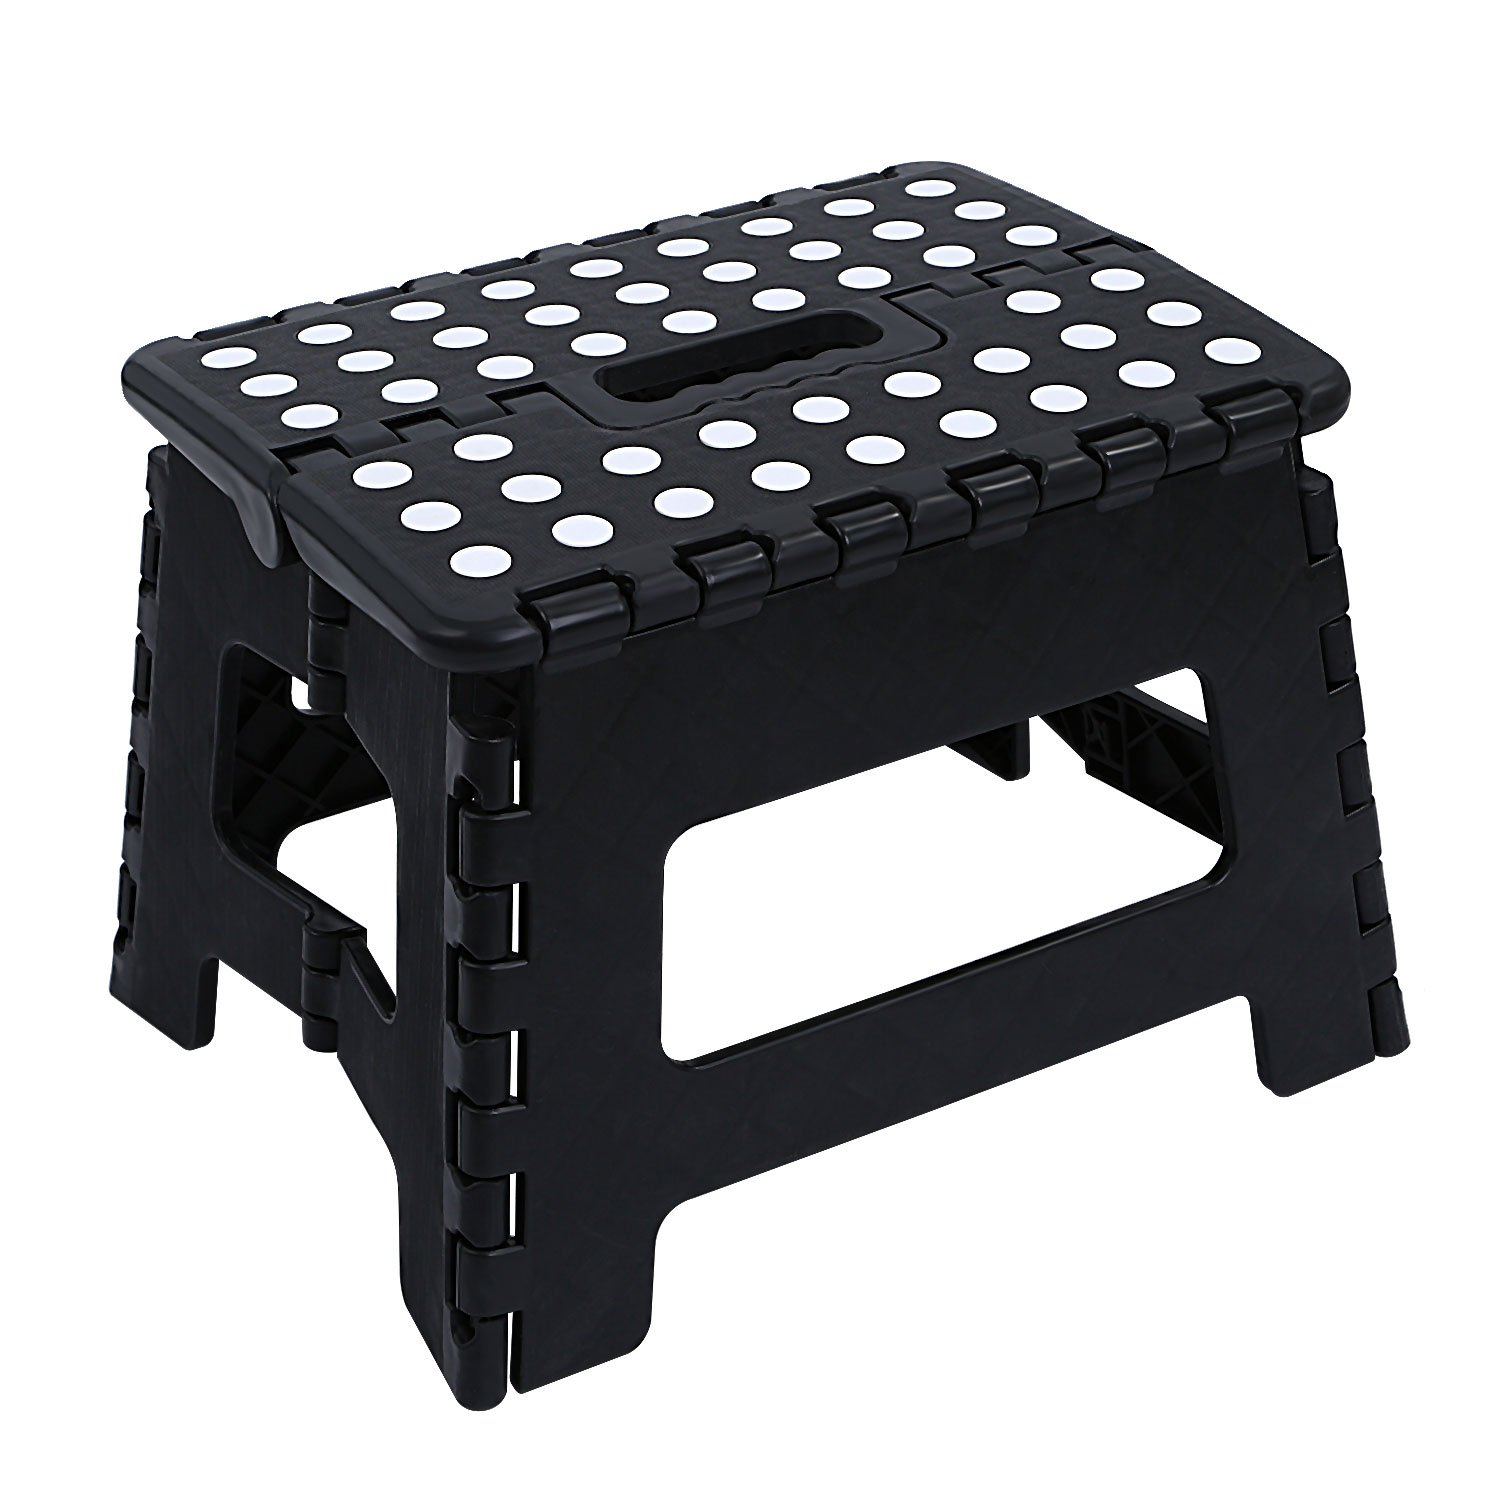 NONMON Plastic Folding Step Stool Black - Great Kitchen, Bathroom, Bedroom, Kids Adults 28.5 x 21.5 x 22cm